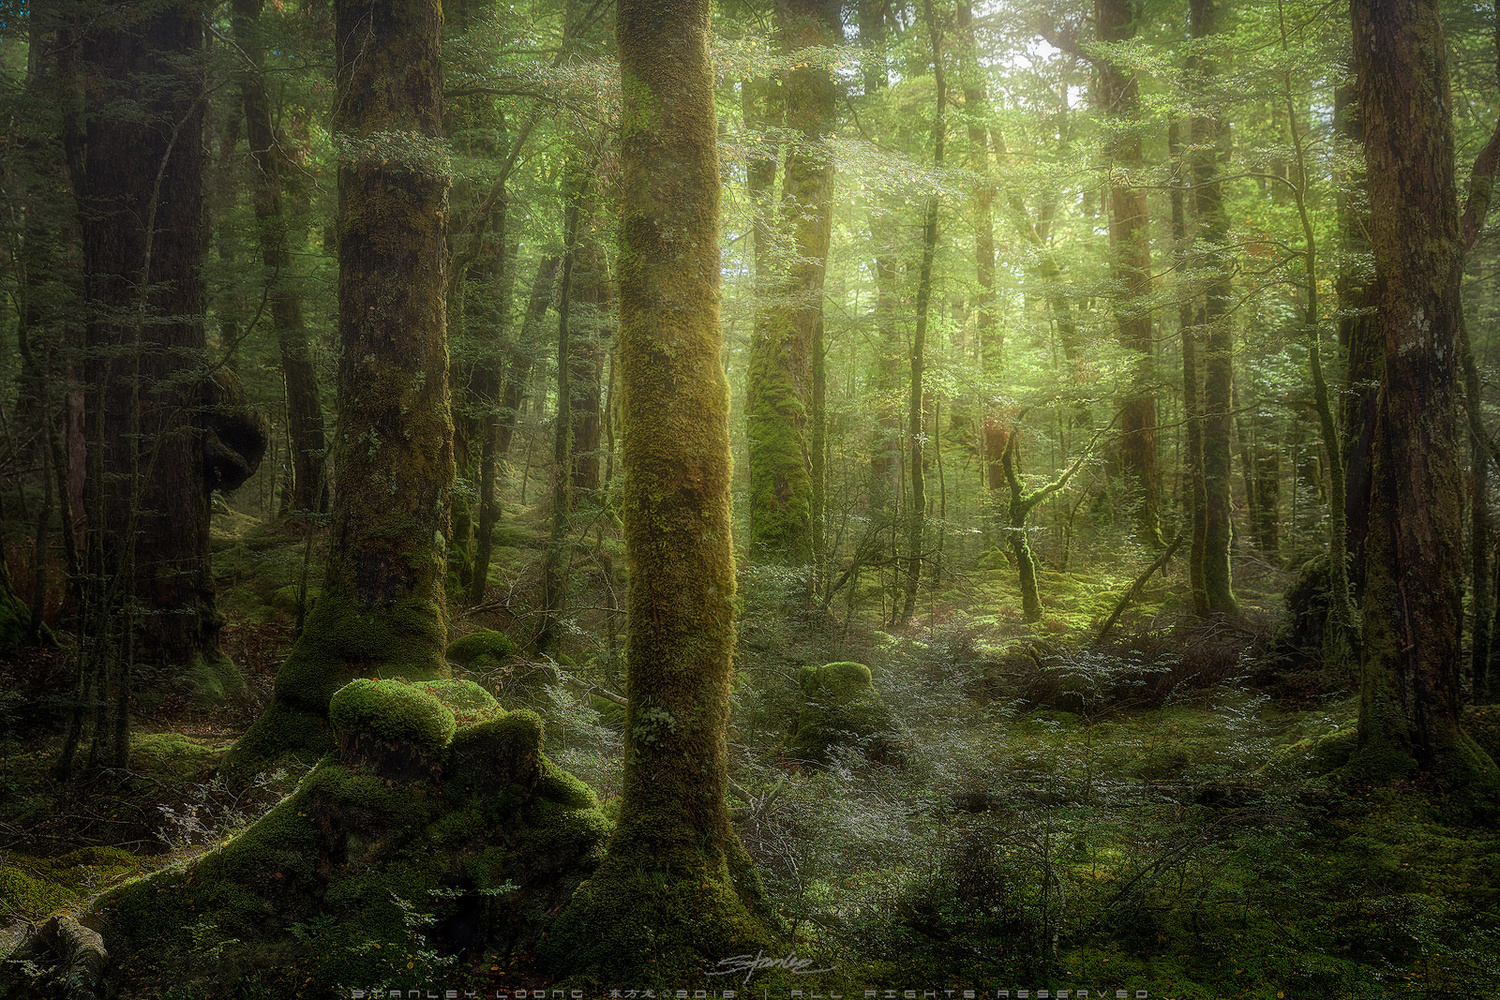 Beech Forest by Stanley Loong